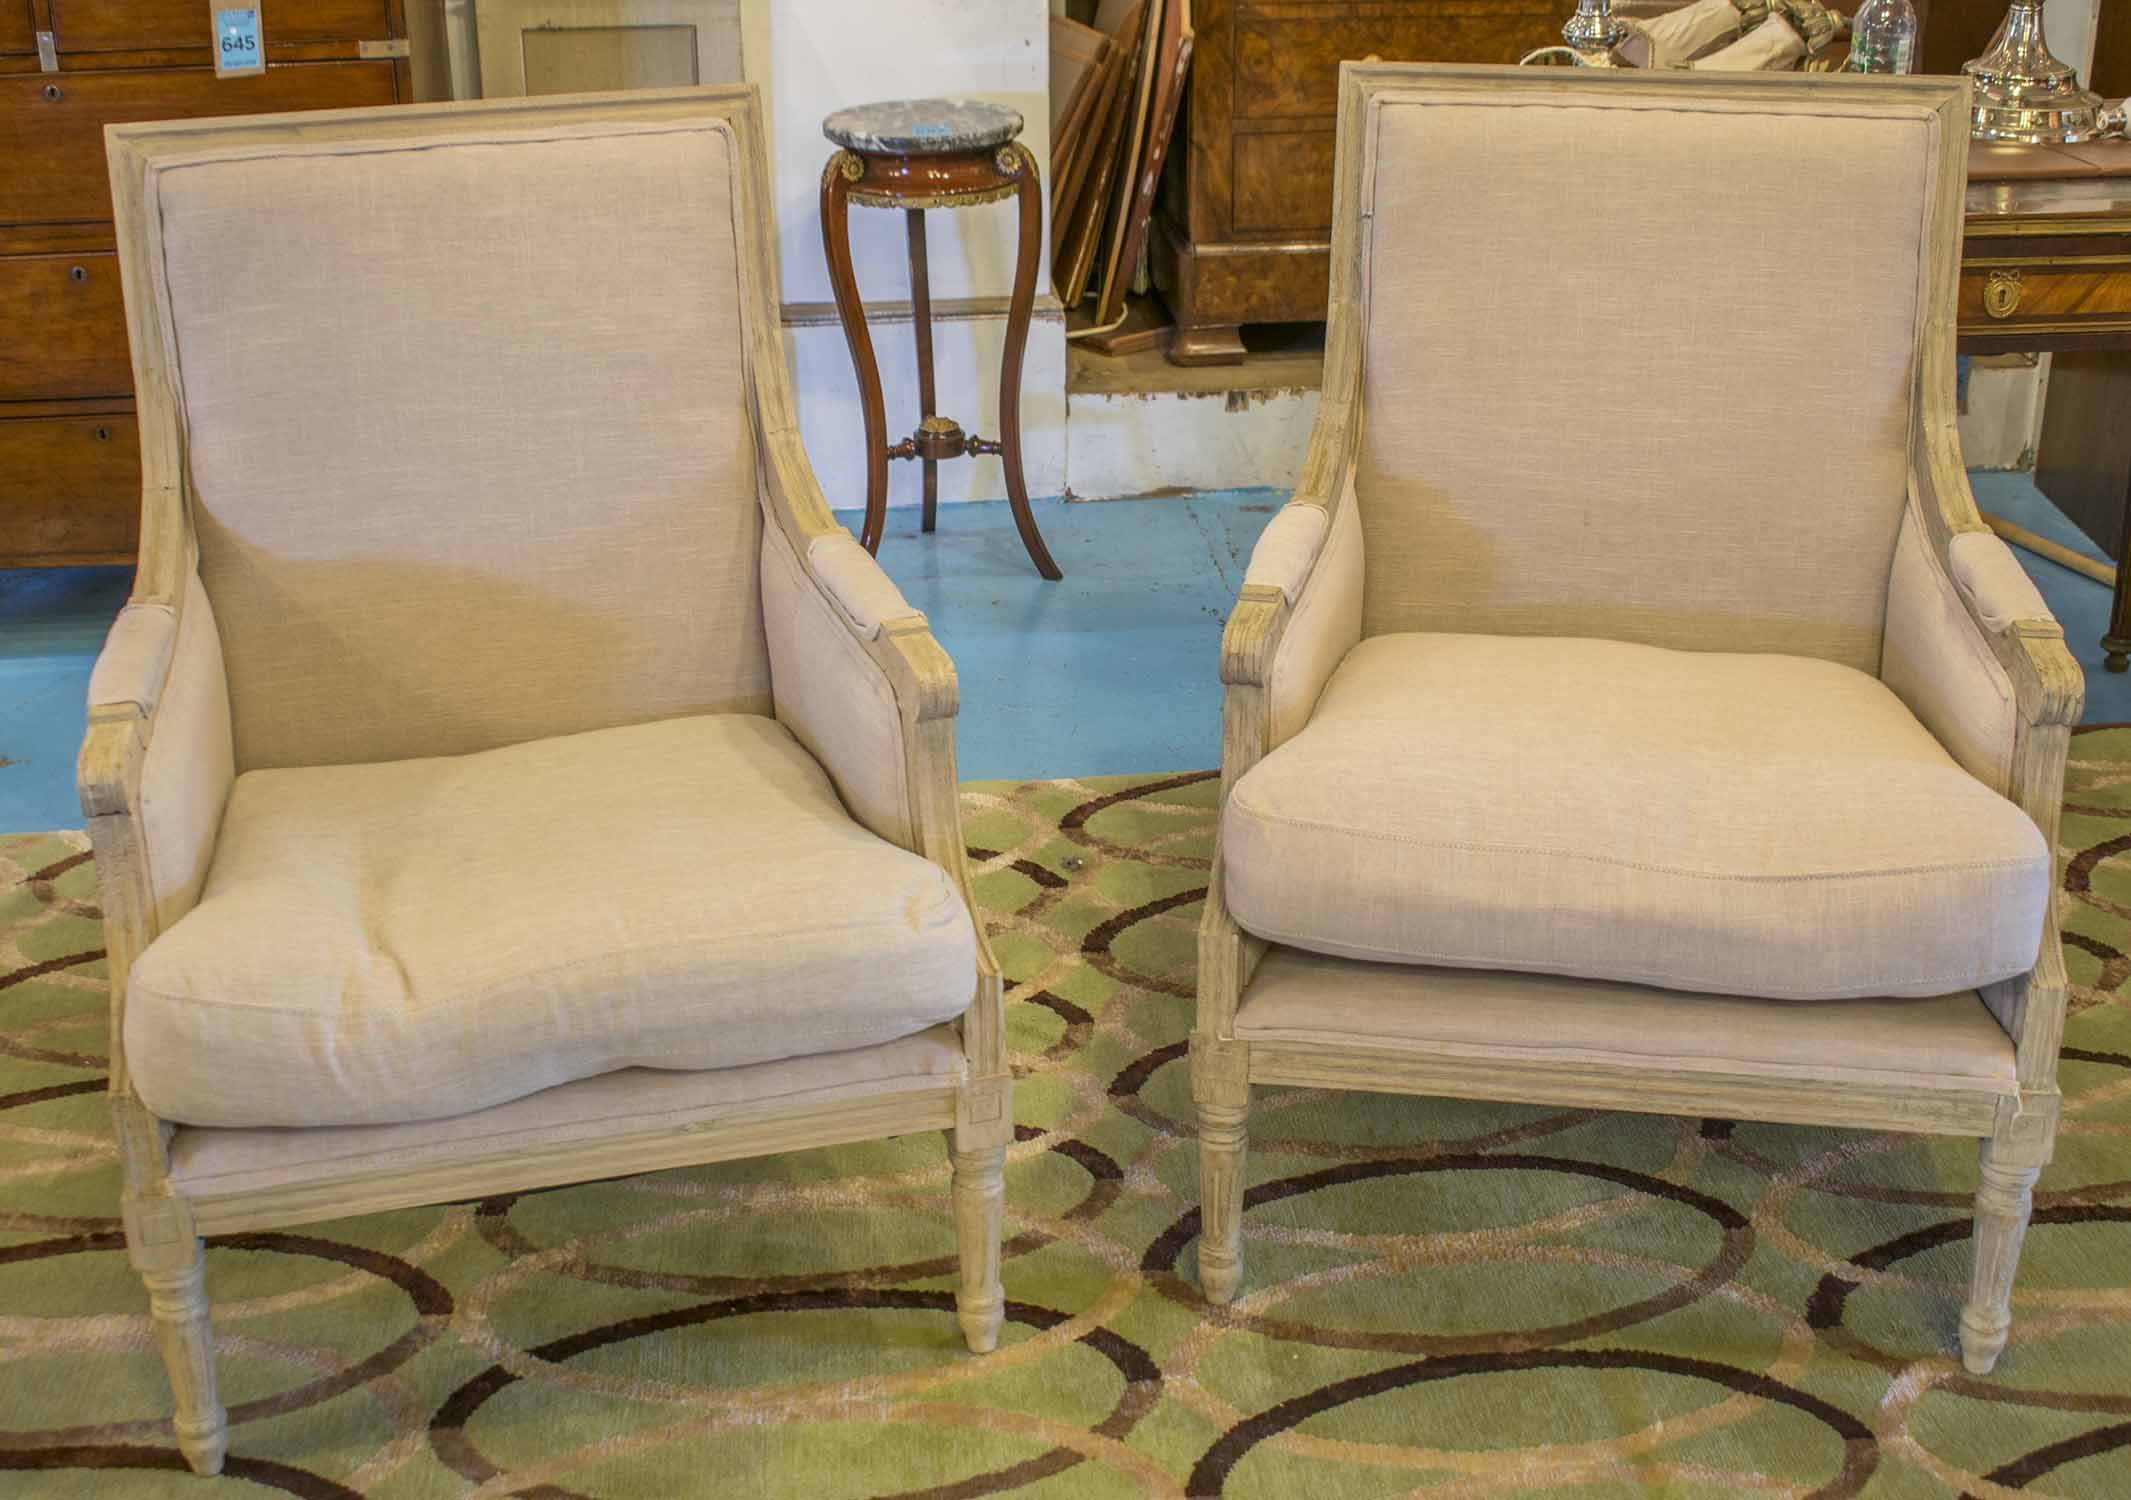 Fauteuils A Pair French Louis Xvi Style Traditionally Grey Painted With Natural Linen Upholstery And Seat Cushion 2